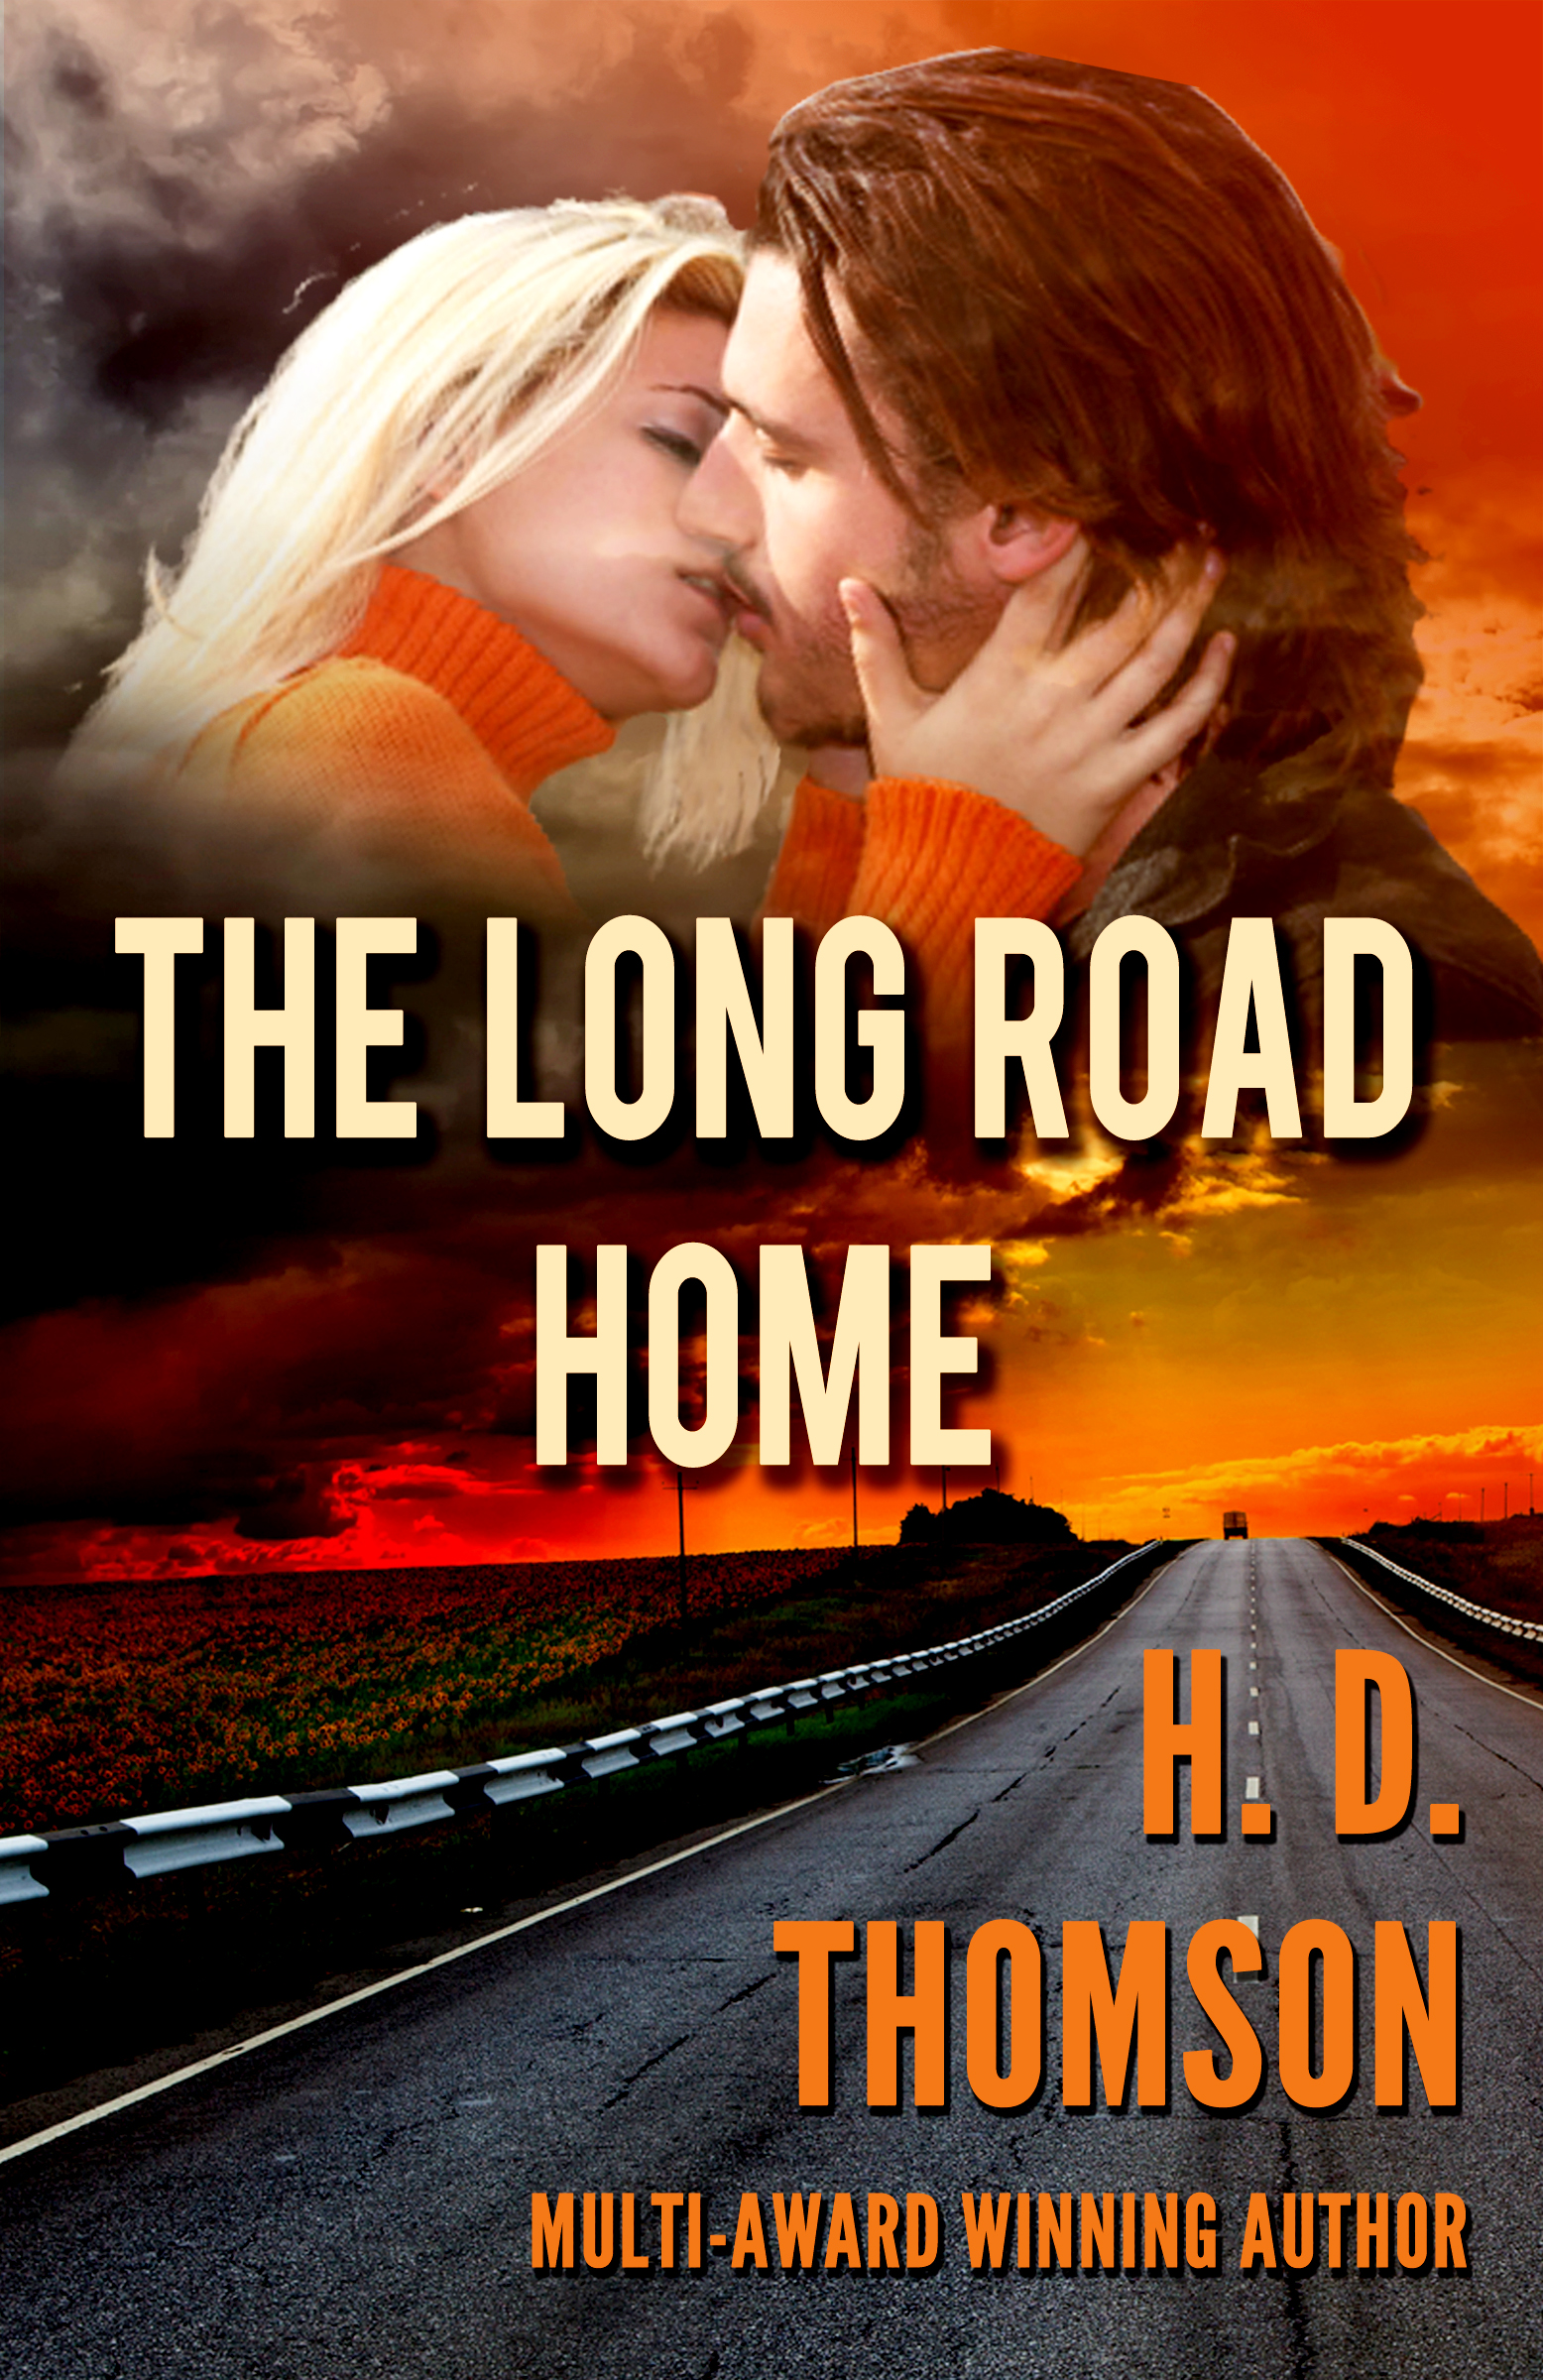 H.D. Thomson - The Long Road Home